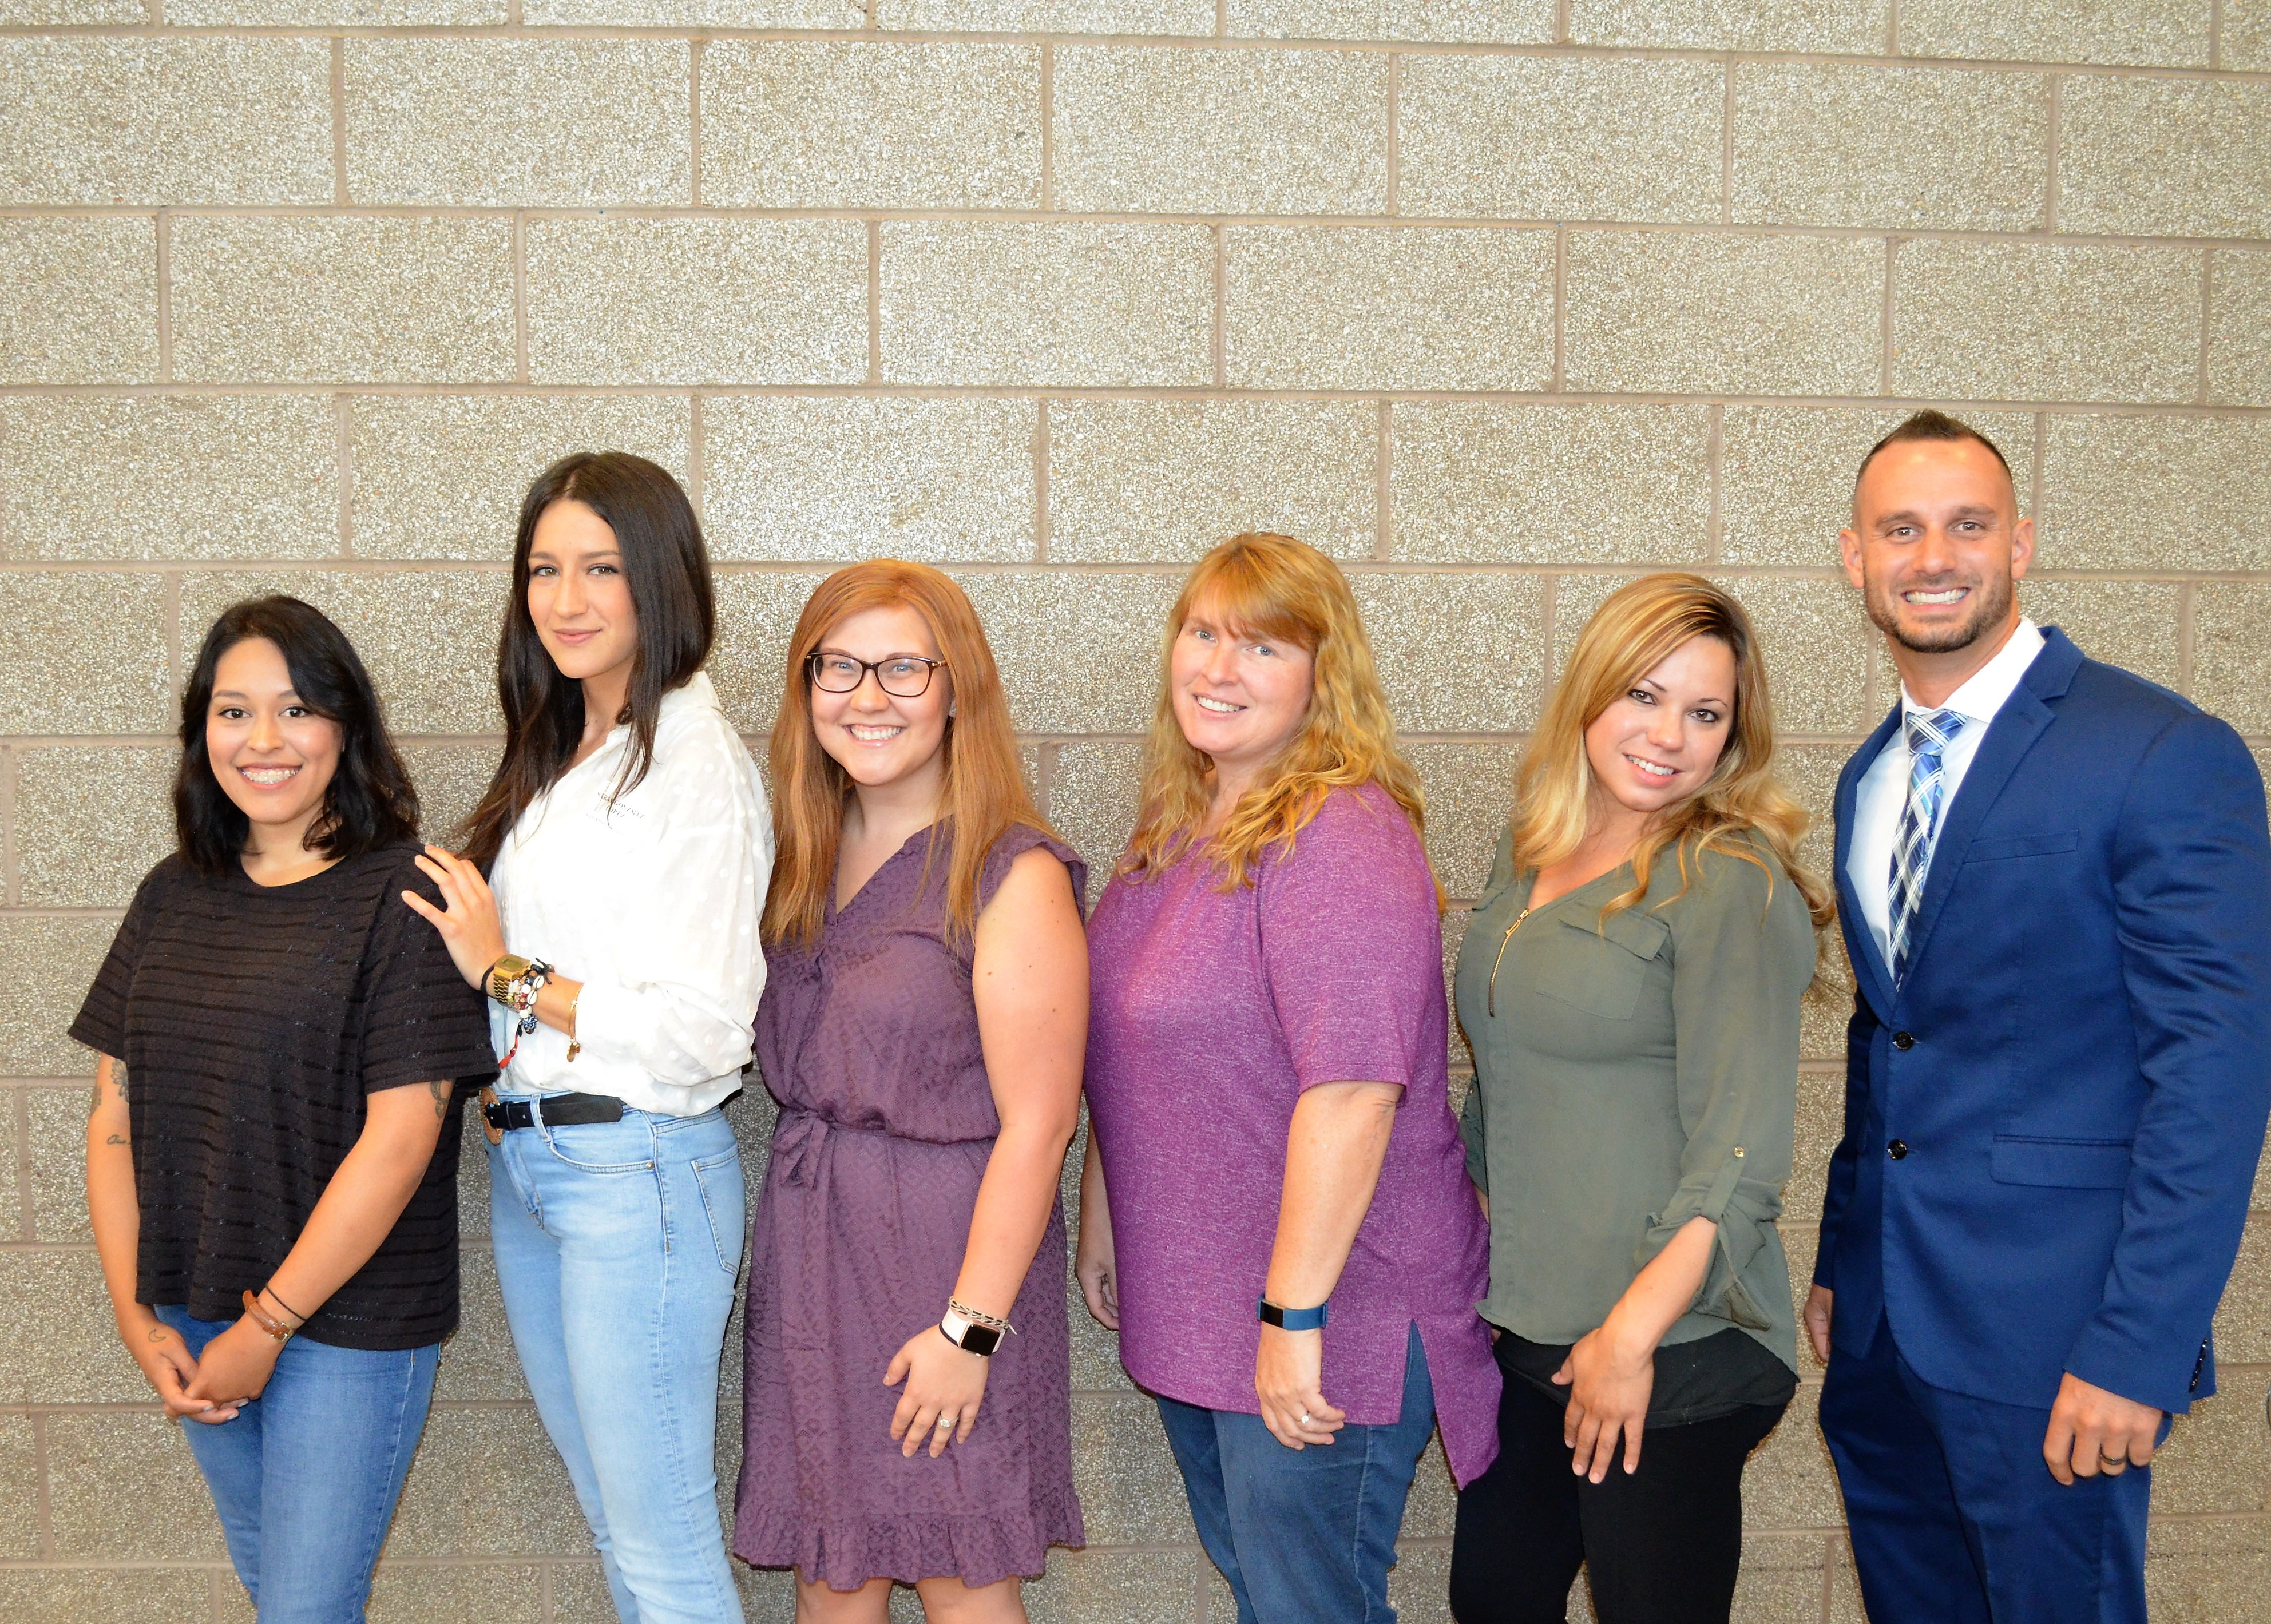 New staff at Dean Street Elementary